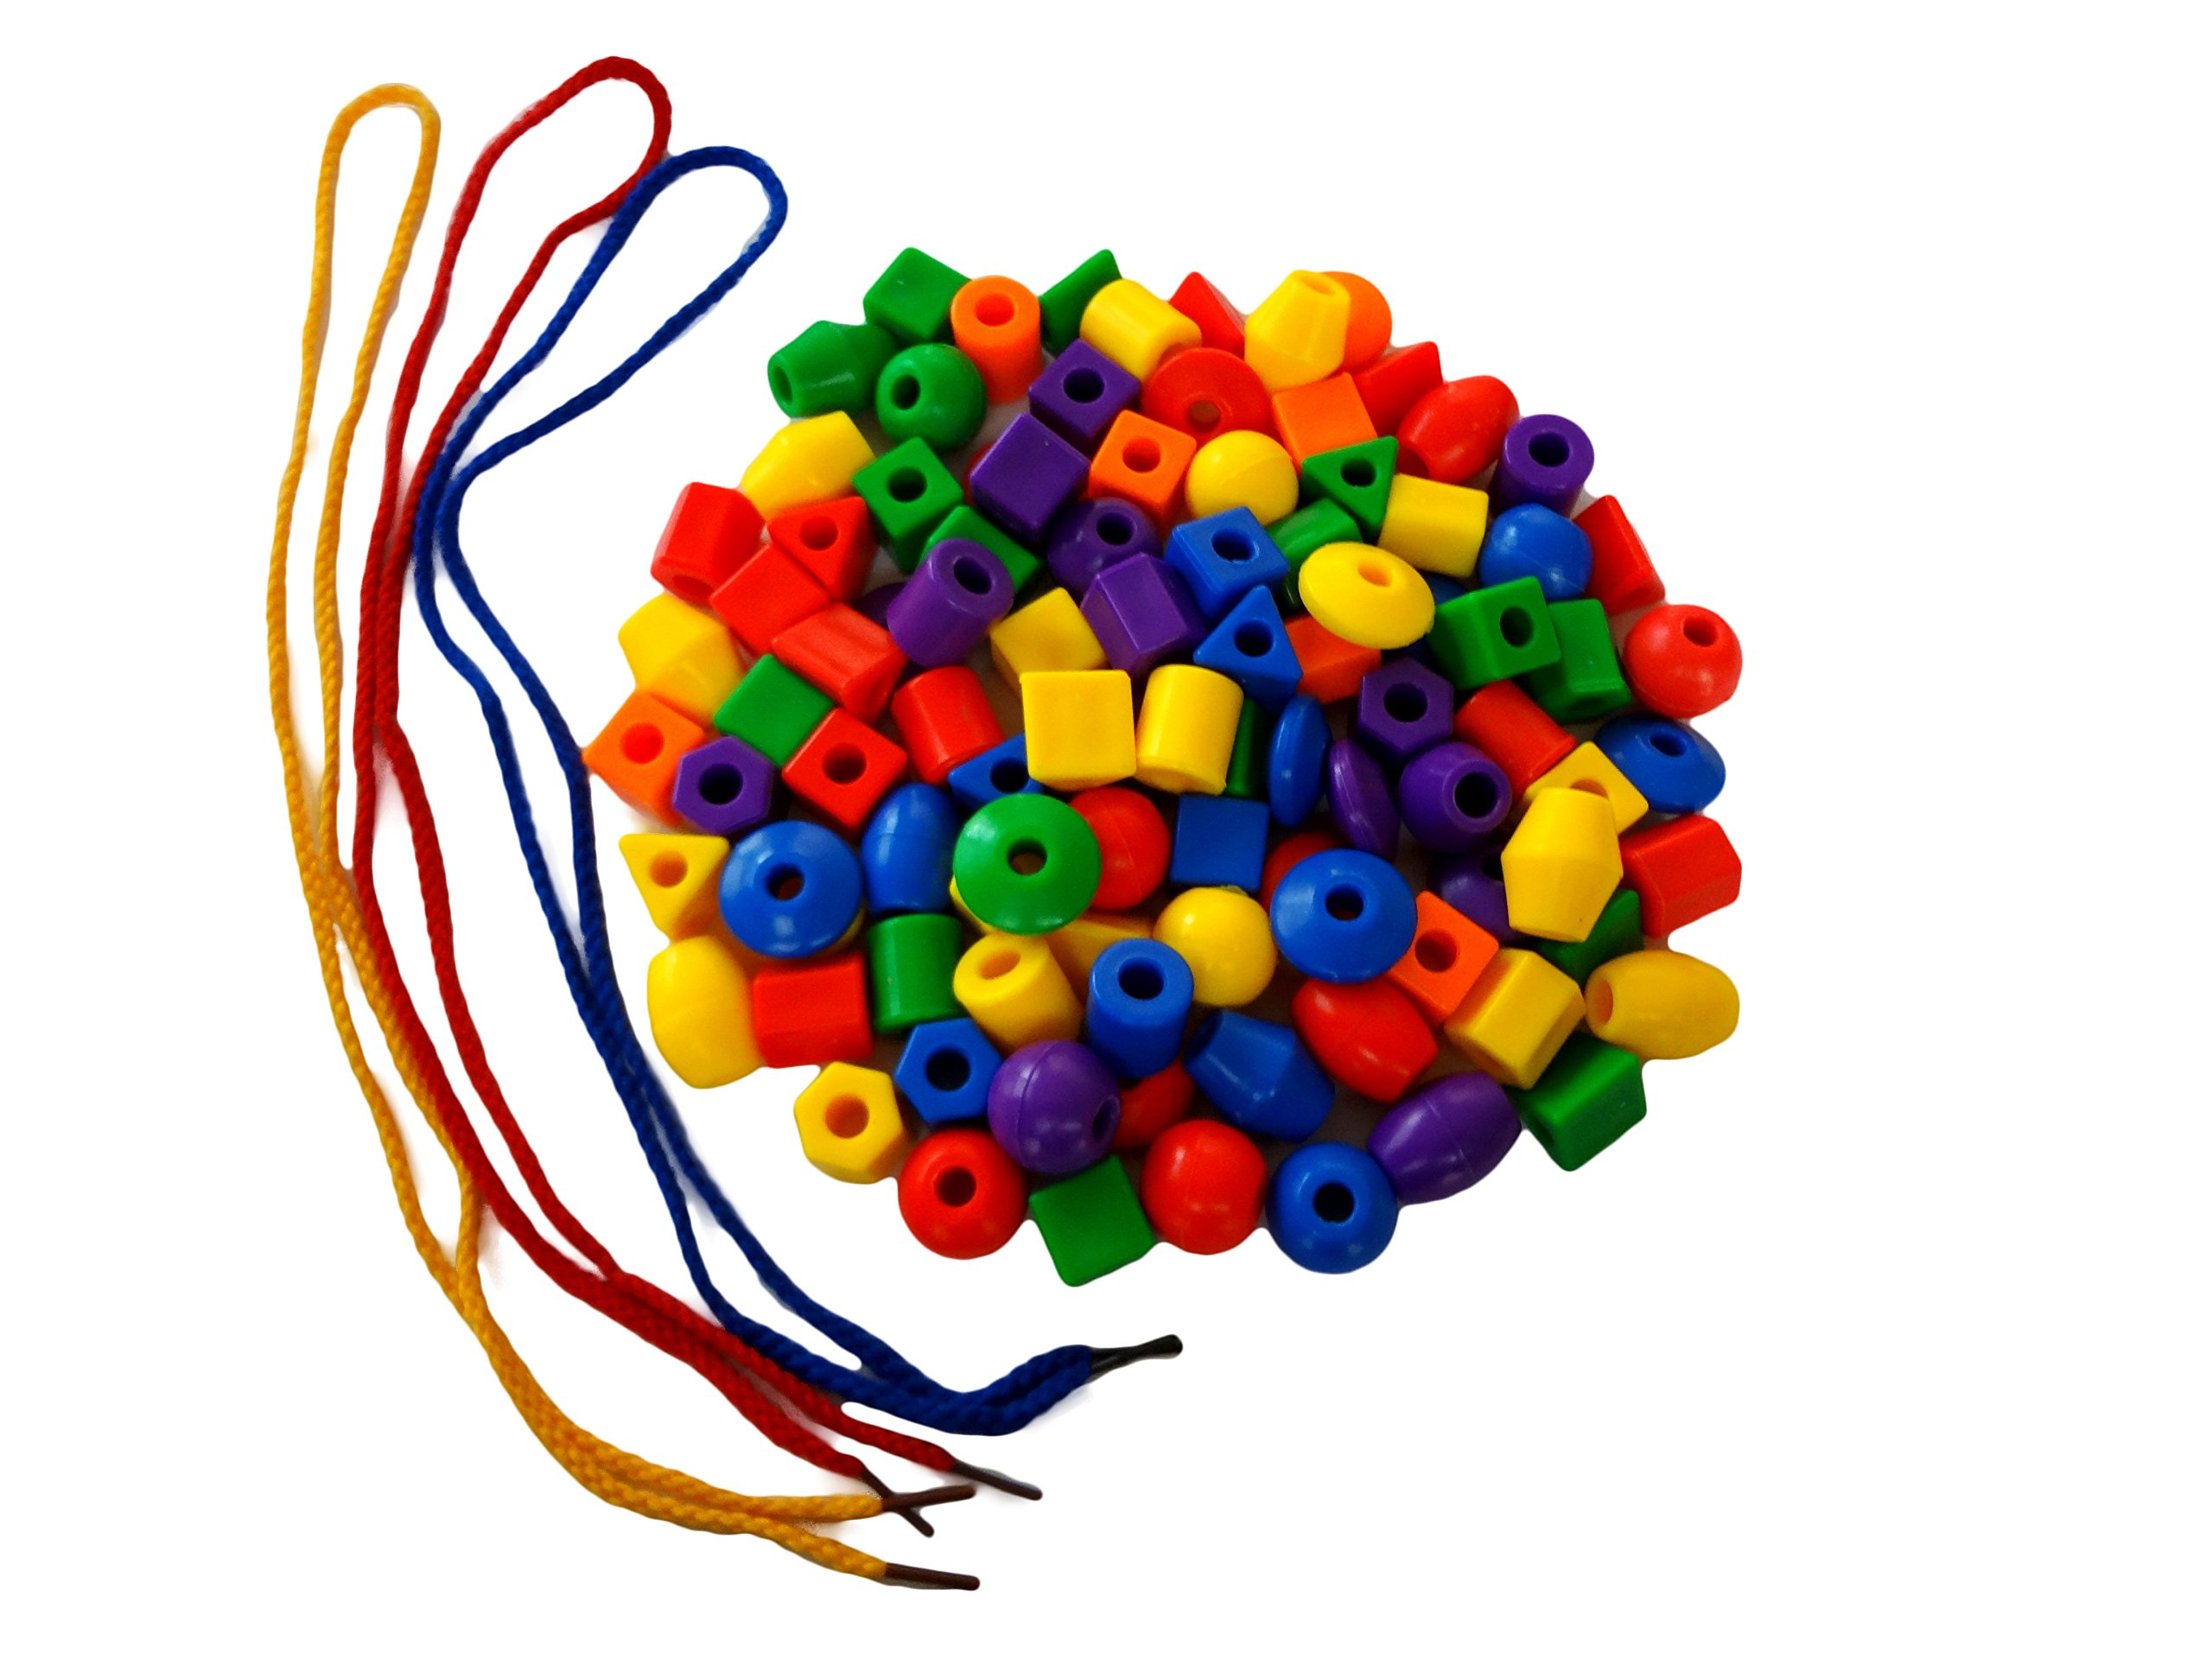 Discount Learning Supplies 100 Jumbo Assorted Plastic Beads with Three Lacing Strings and Free Storage Pouch